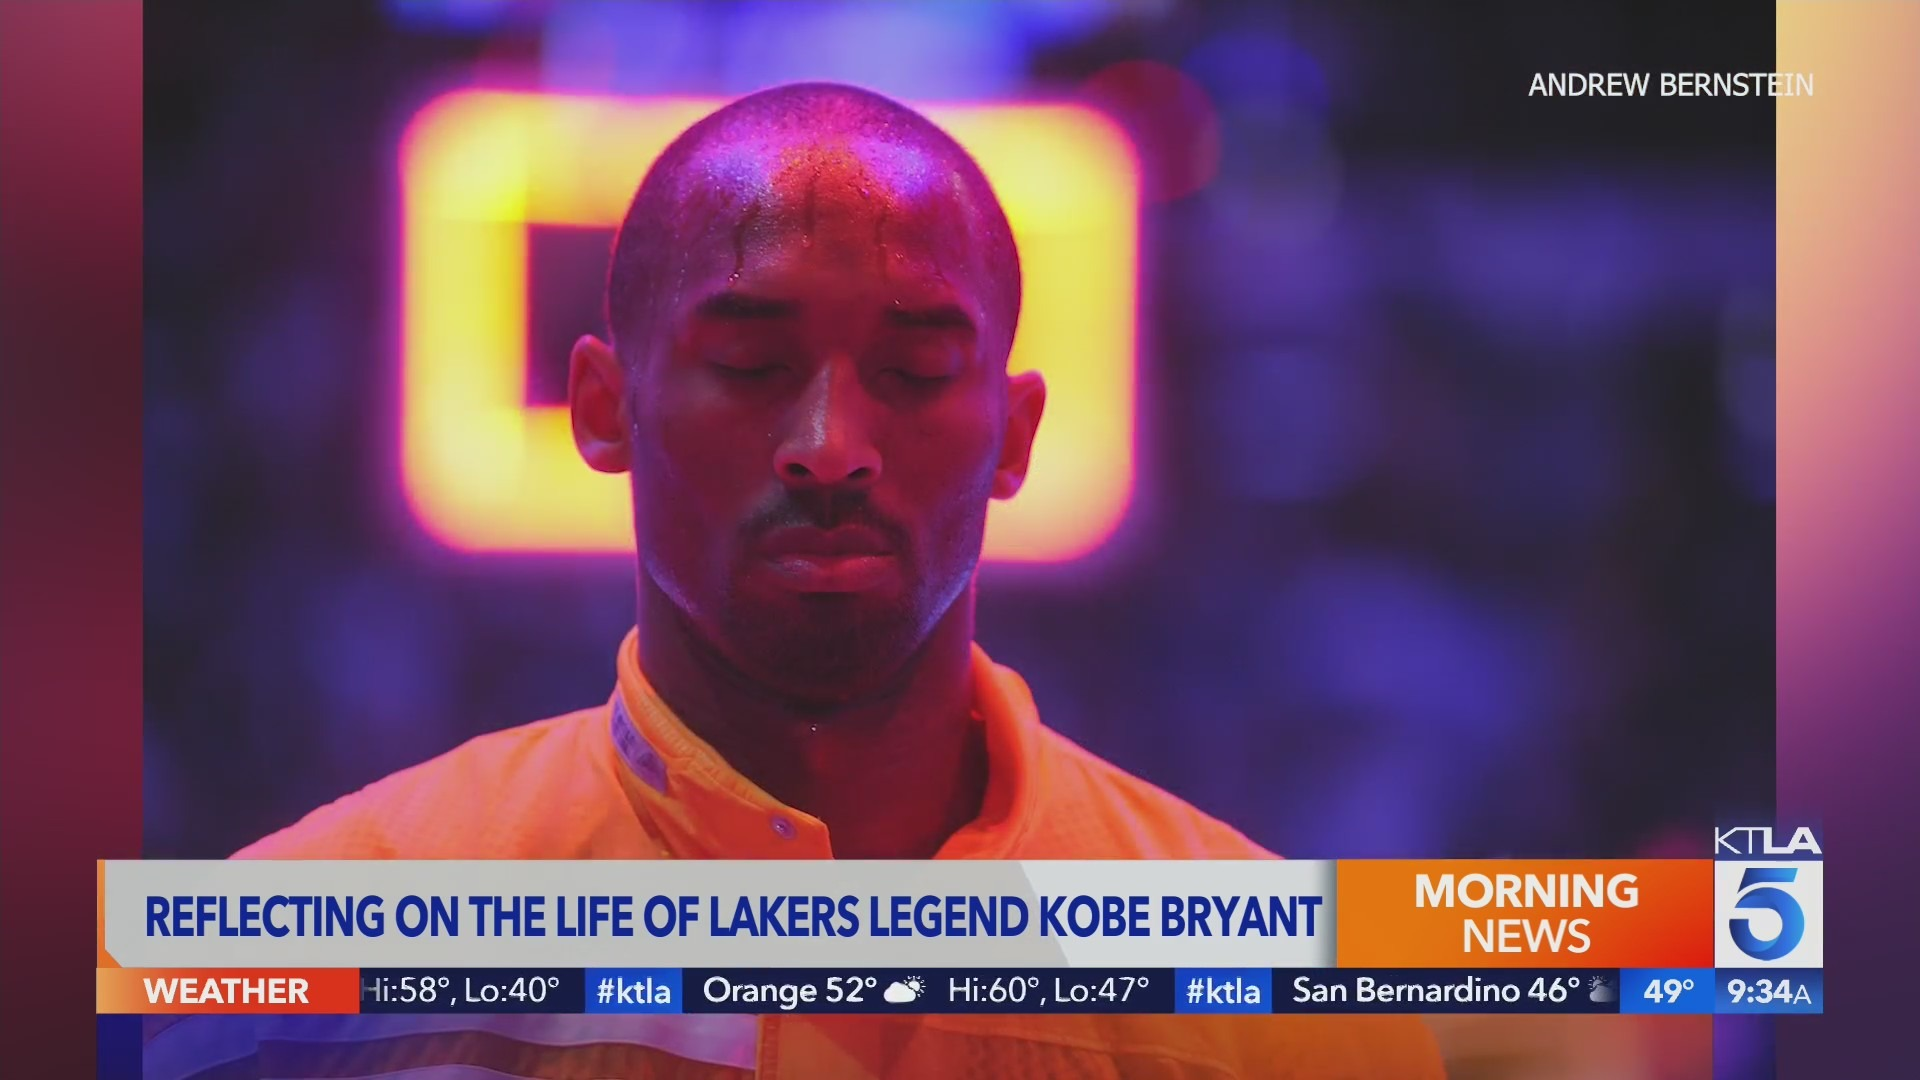 Remembering Kobe Bryant with Andrew Bernstein